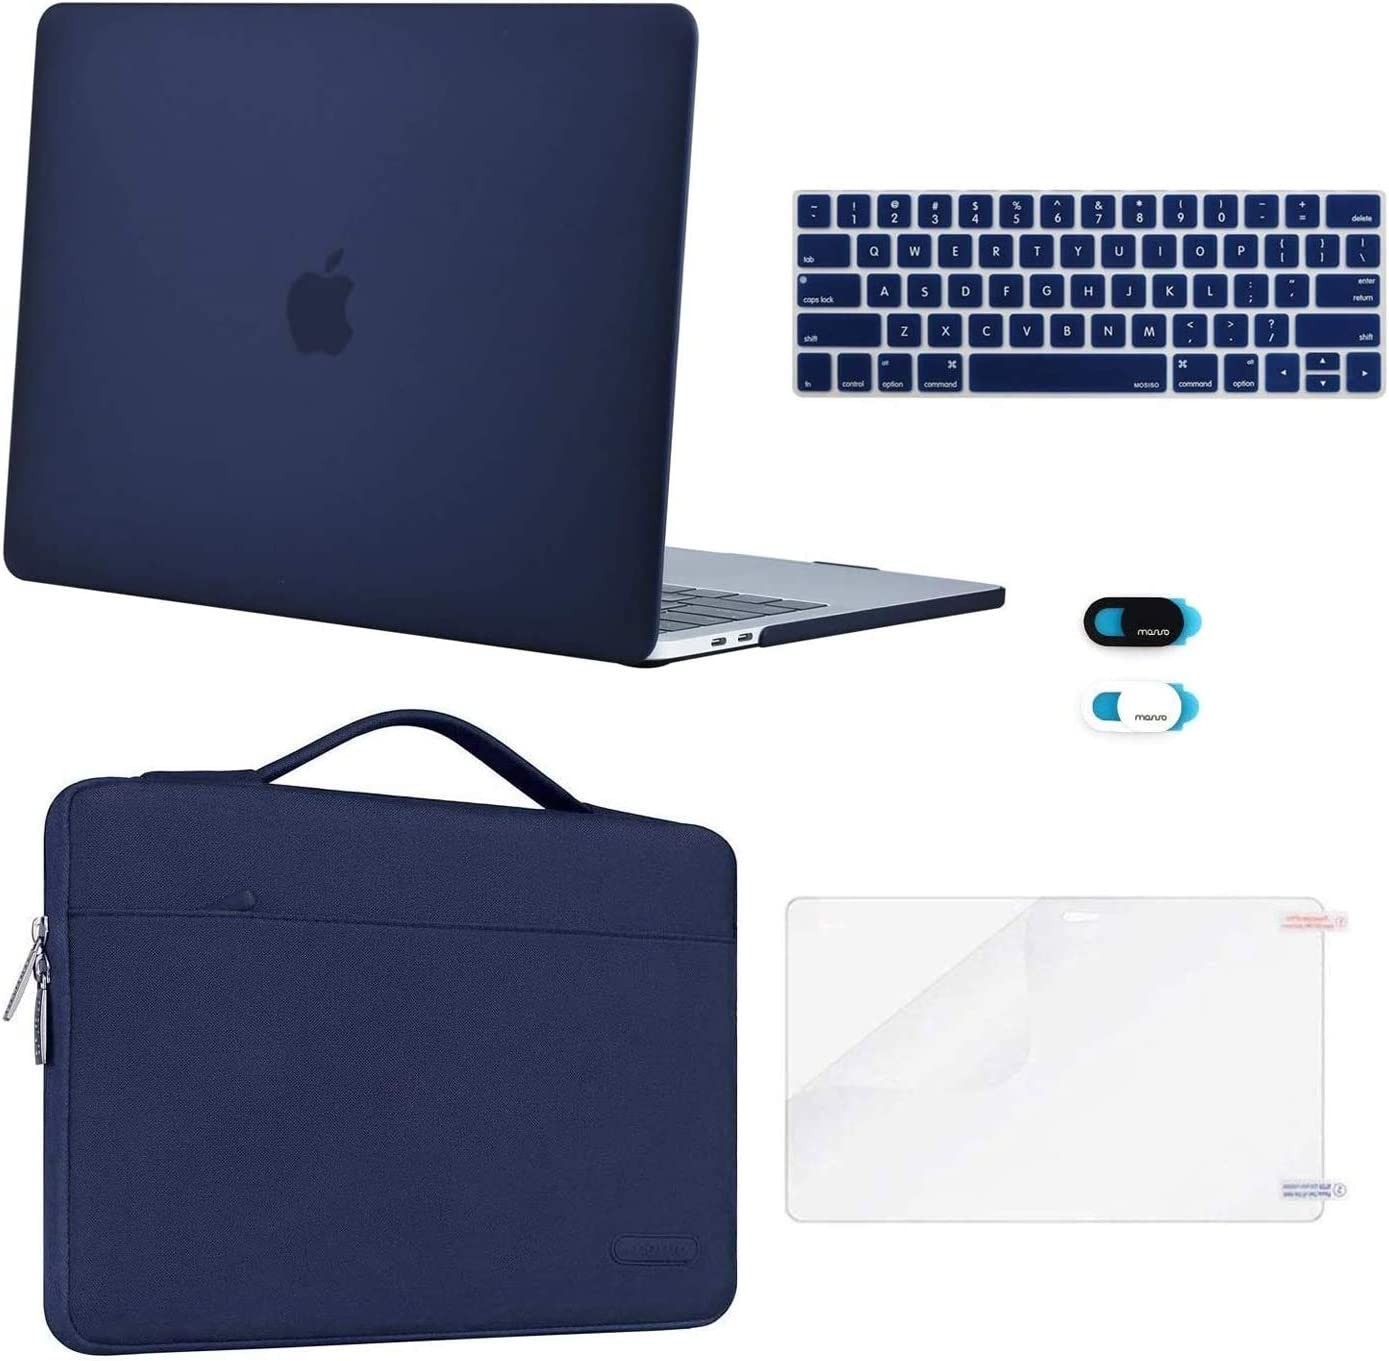 MOSISO Compatible with MacBook Pro 13 inch Case 2019 2018 2017 2016 Release A2159 A1989 A1706 A1708, Plastic Hard Shell Case&Sleeve Bag&Keyboard Skin&Webcam Cover&Screen Protector, Navy Blue